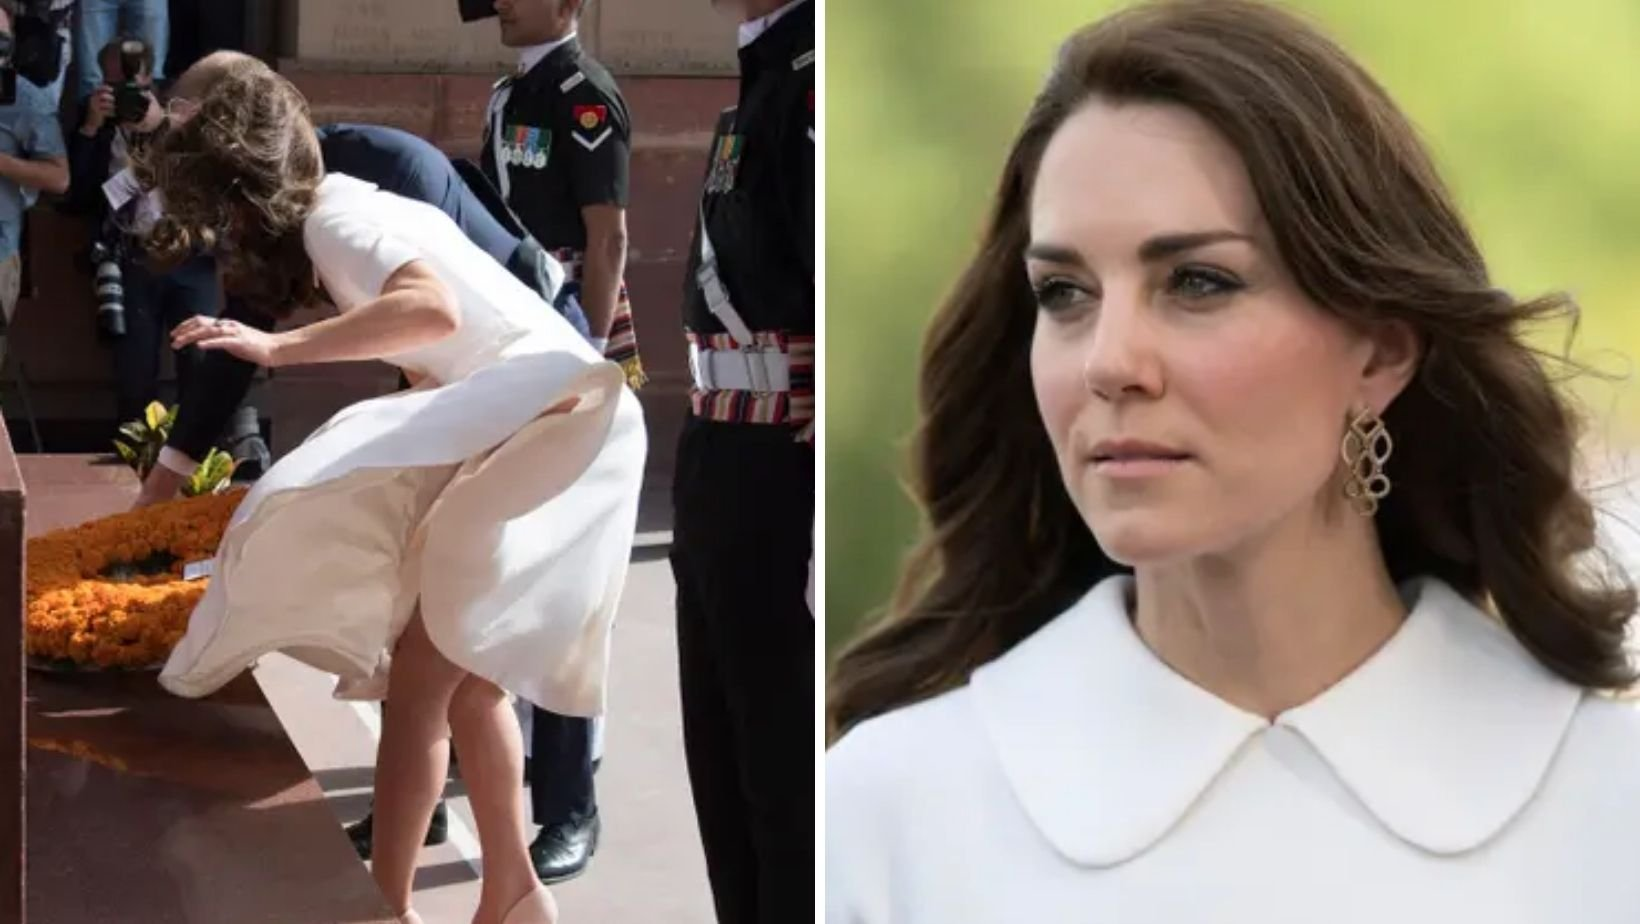 1 18.jpg?resize=412,275 - Kate Middleton Had Serious Wardrobe Fail After The Wind Blew Her Dress Up During Tour